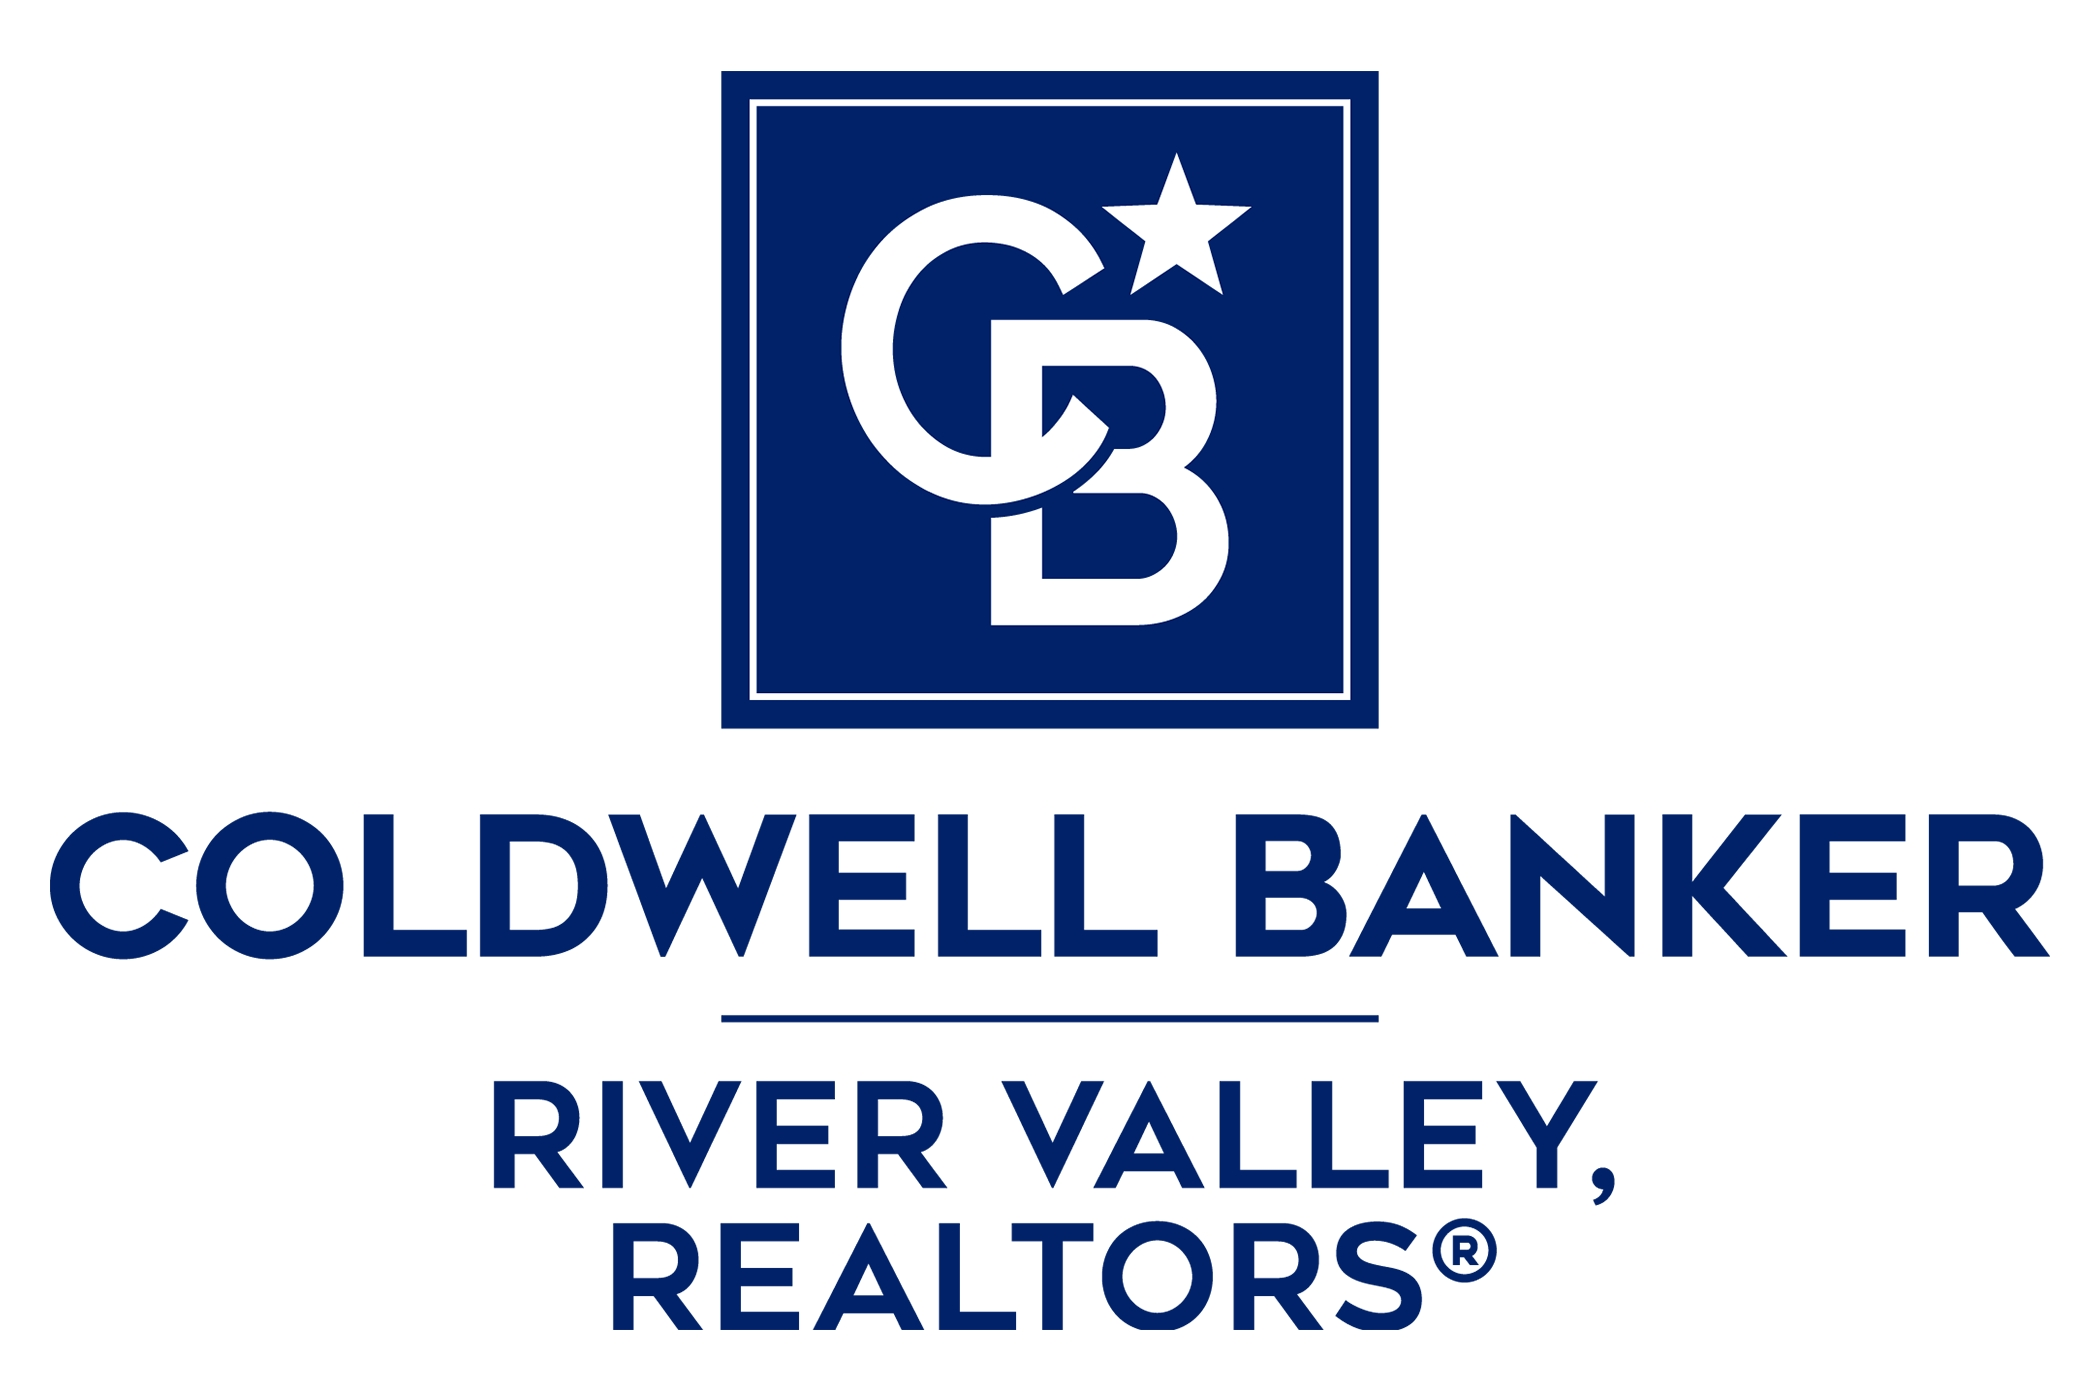 Barbara Simonis - Coldwell Banker River Valley, REALTORS